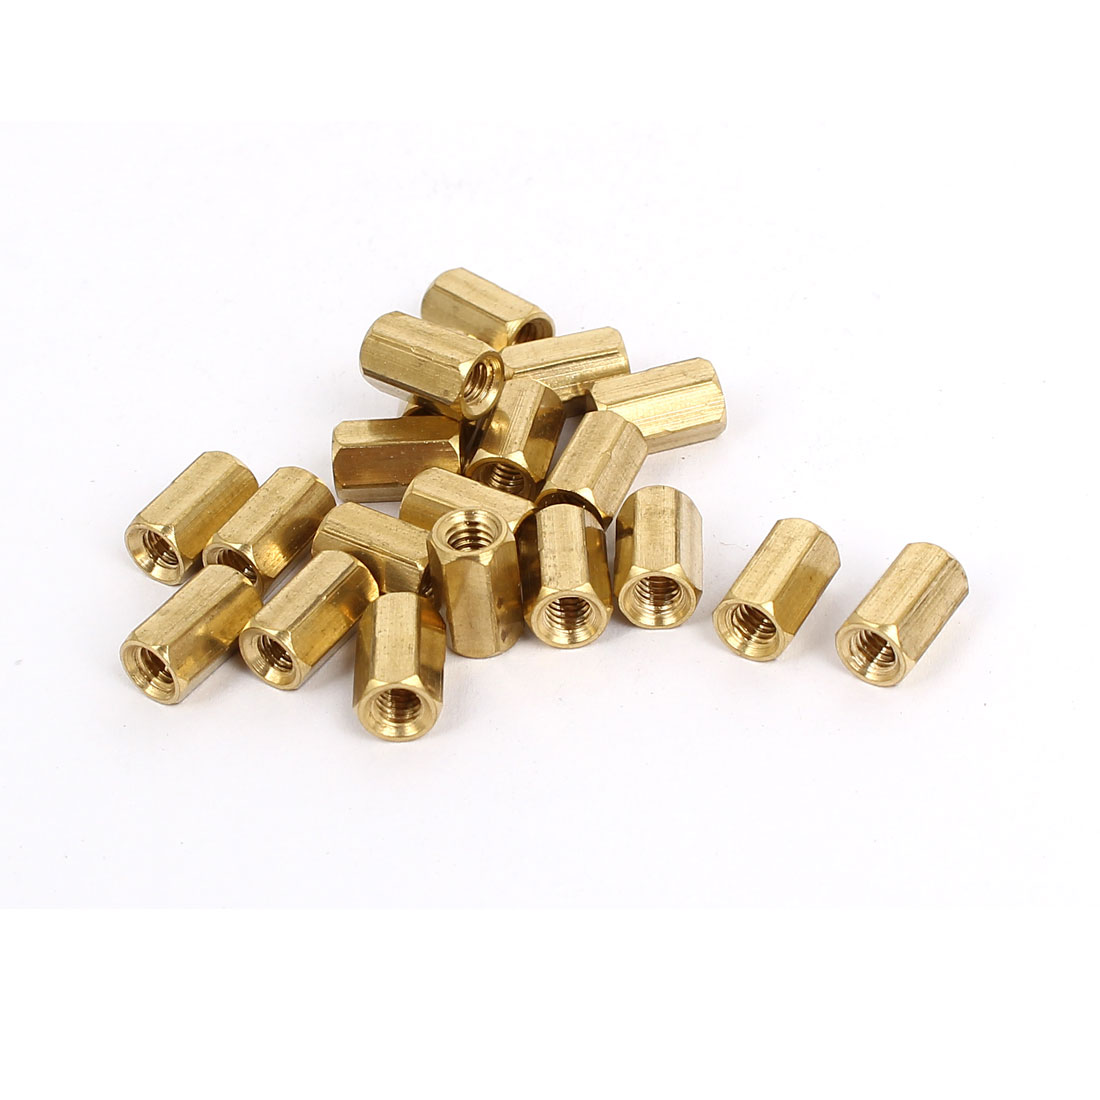 M4x10mm Brass Hex Hexagonal Female Threaded Standoff Spacer Pillars 20pcs